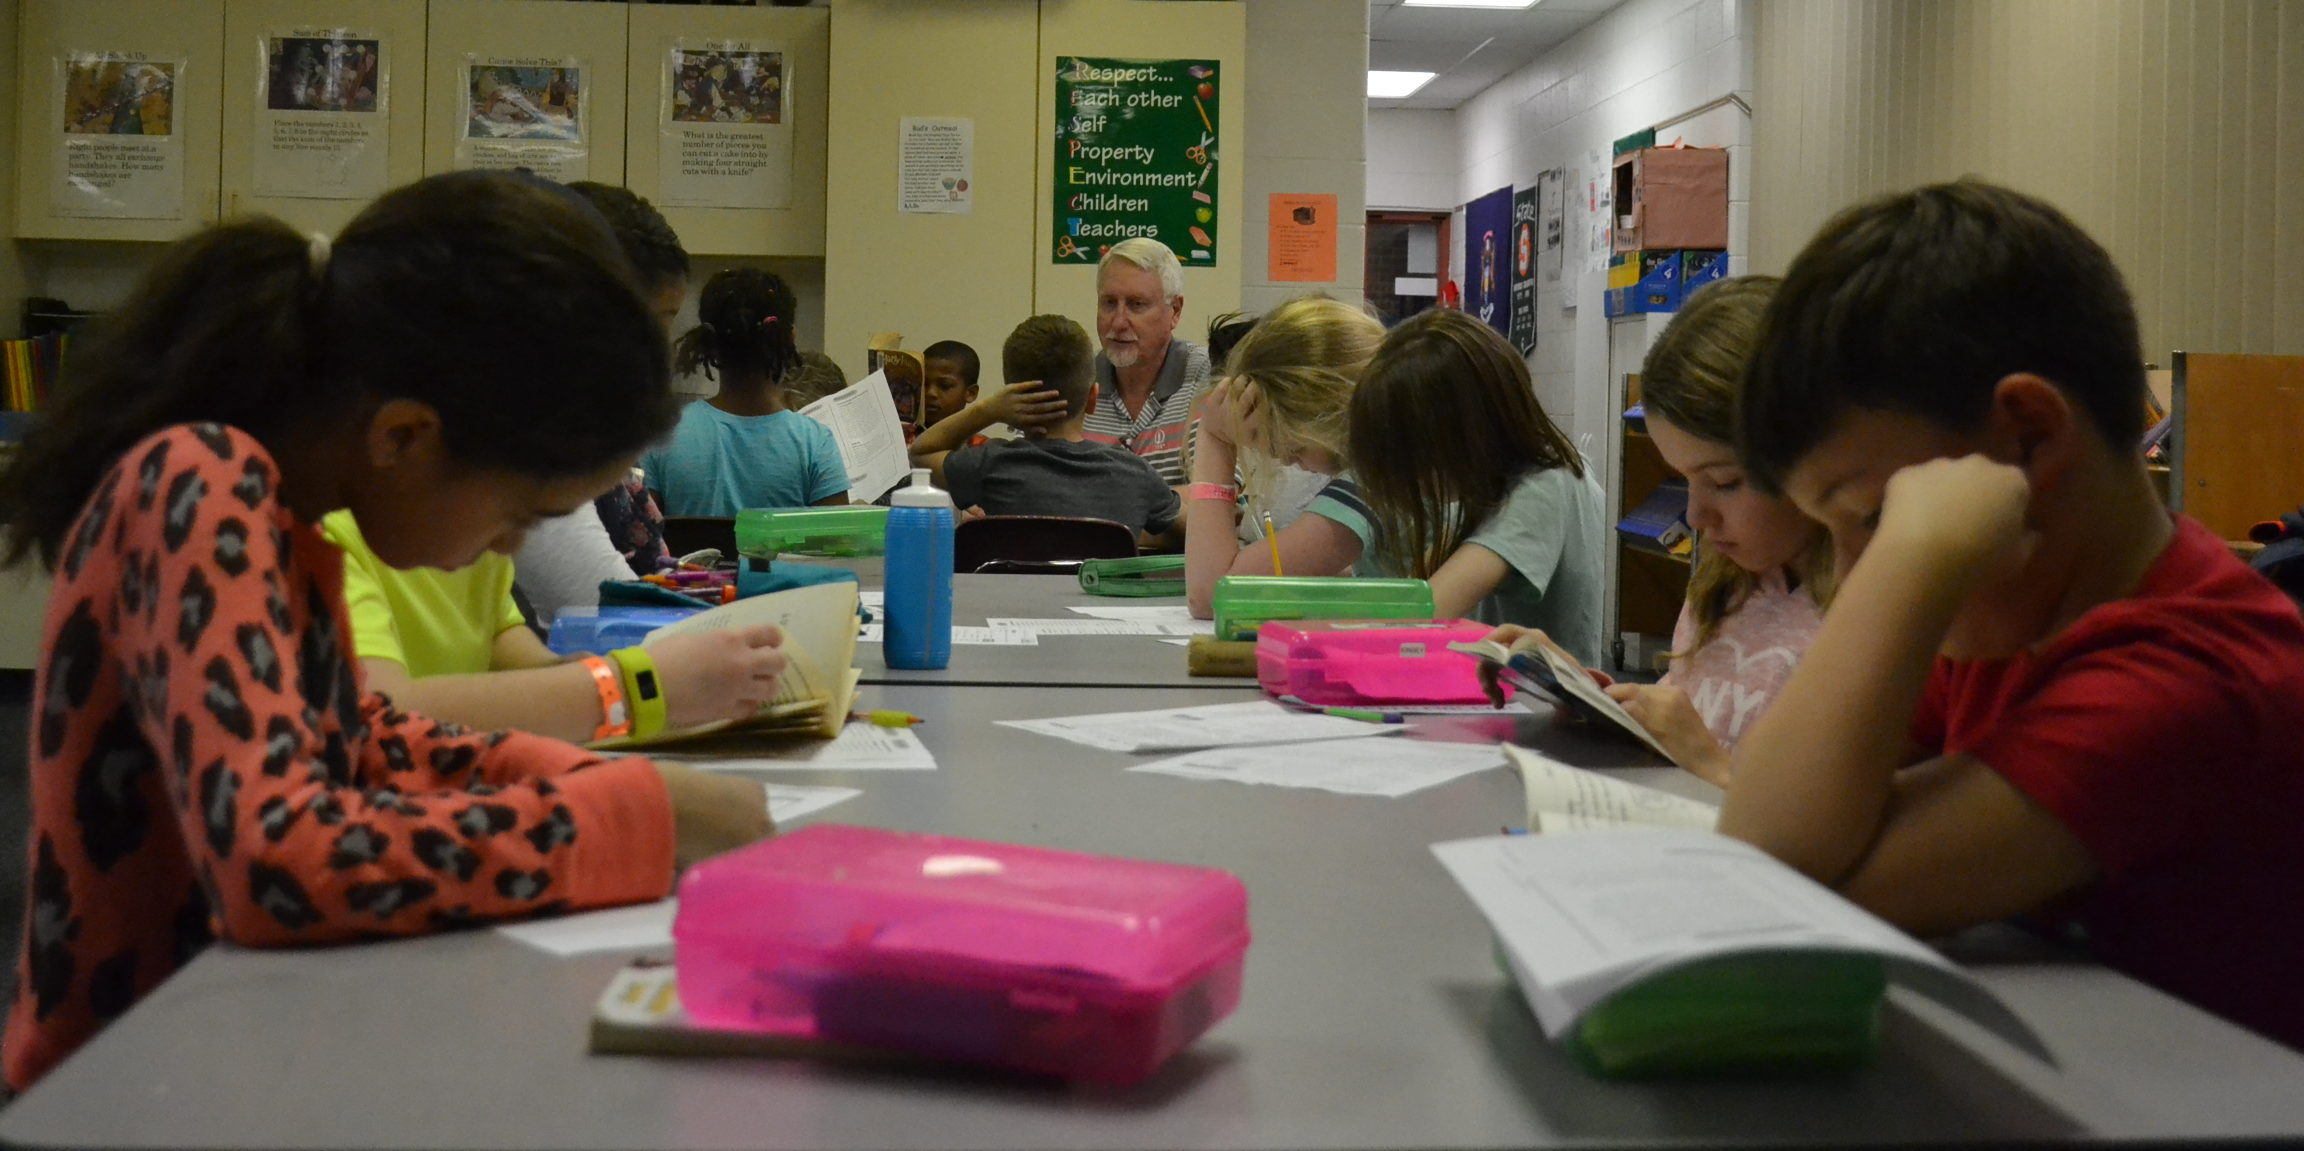 Students at Marble Elementary School individually work on classwork